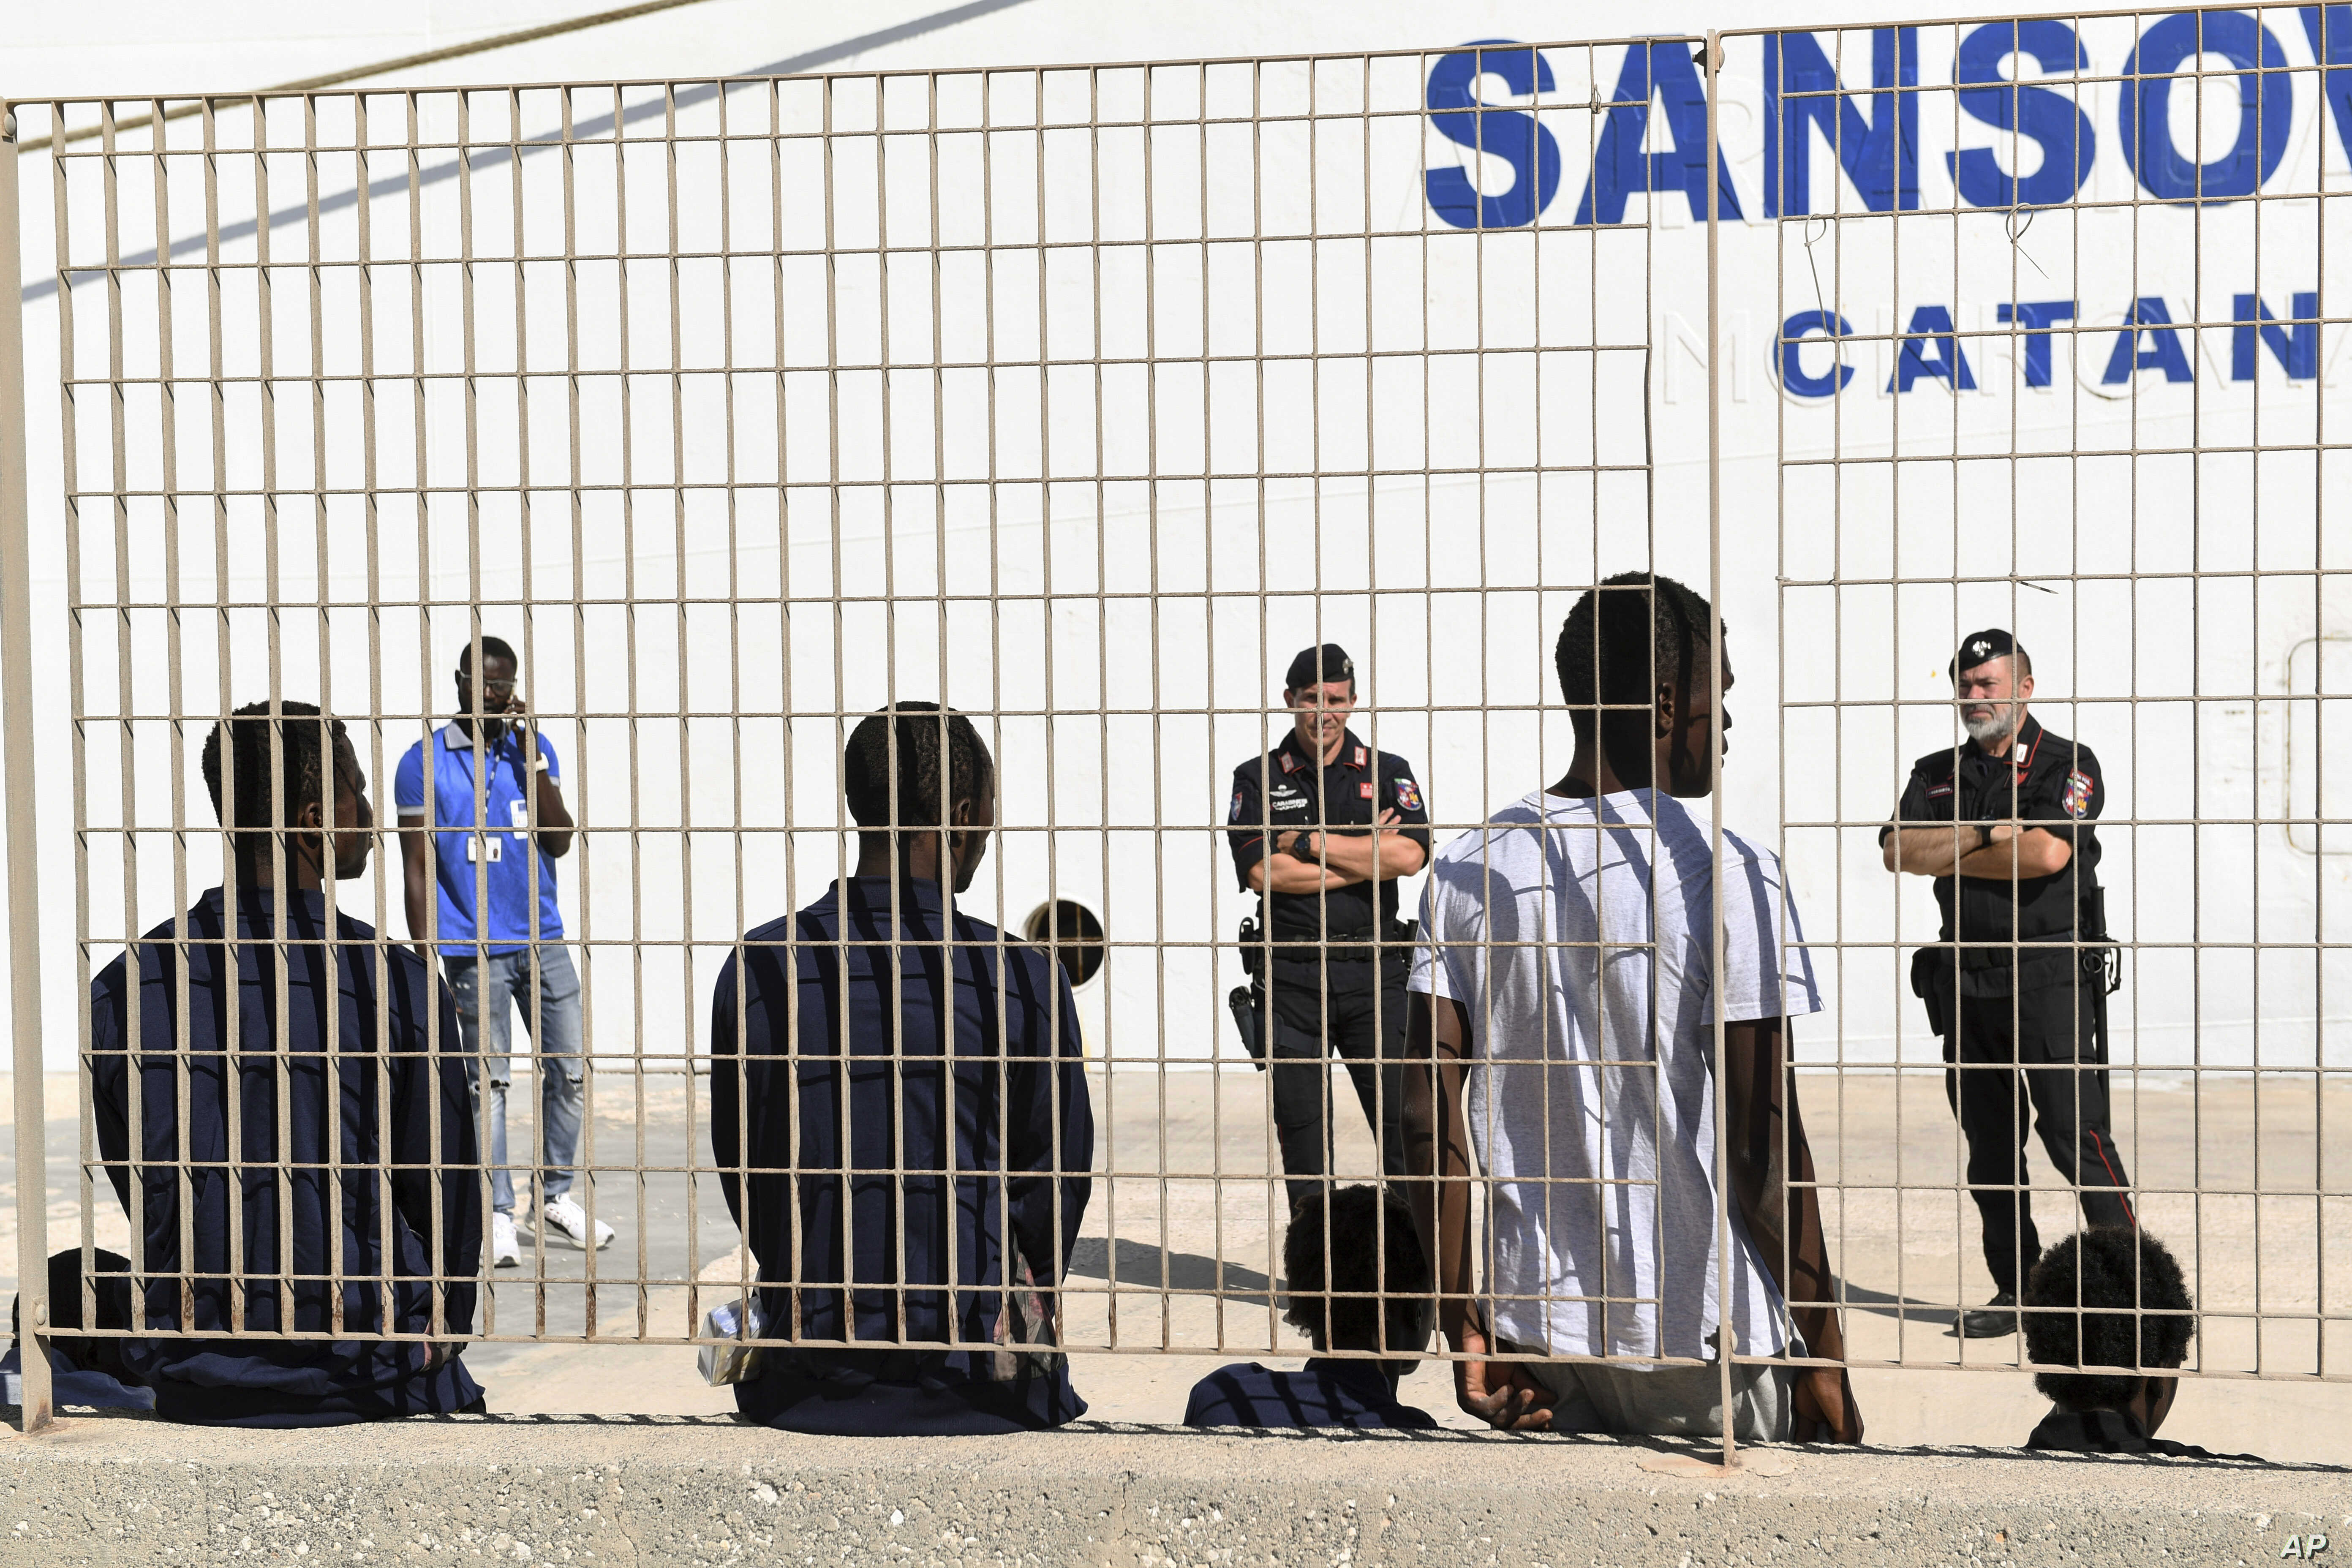 Some of migrant minors allowed to disembark the Open Arms vessel, anchored off the Sicilian vacation and fishing island of Lampedusa, southern Italy, wait to be taken to the Sicilian port of Porto Empedocle from Lampedusa, Aug. 19, 2019.